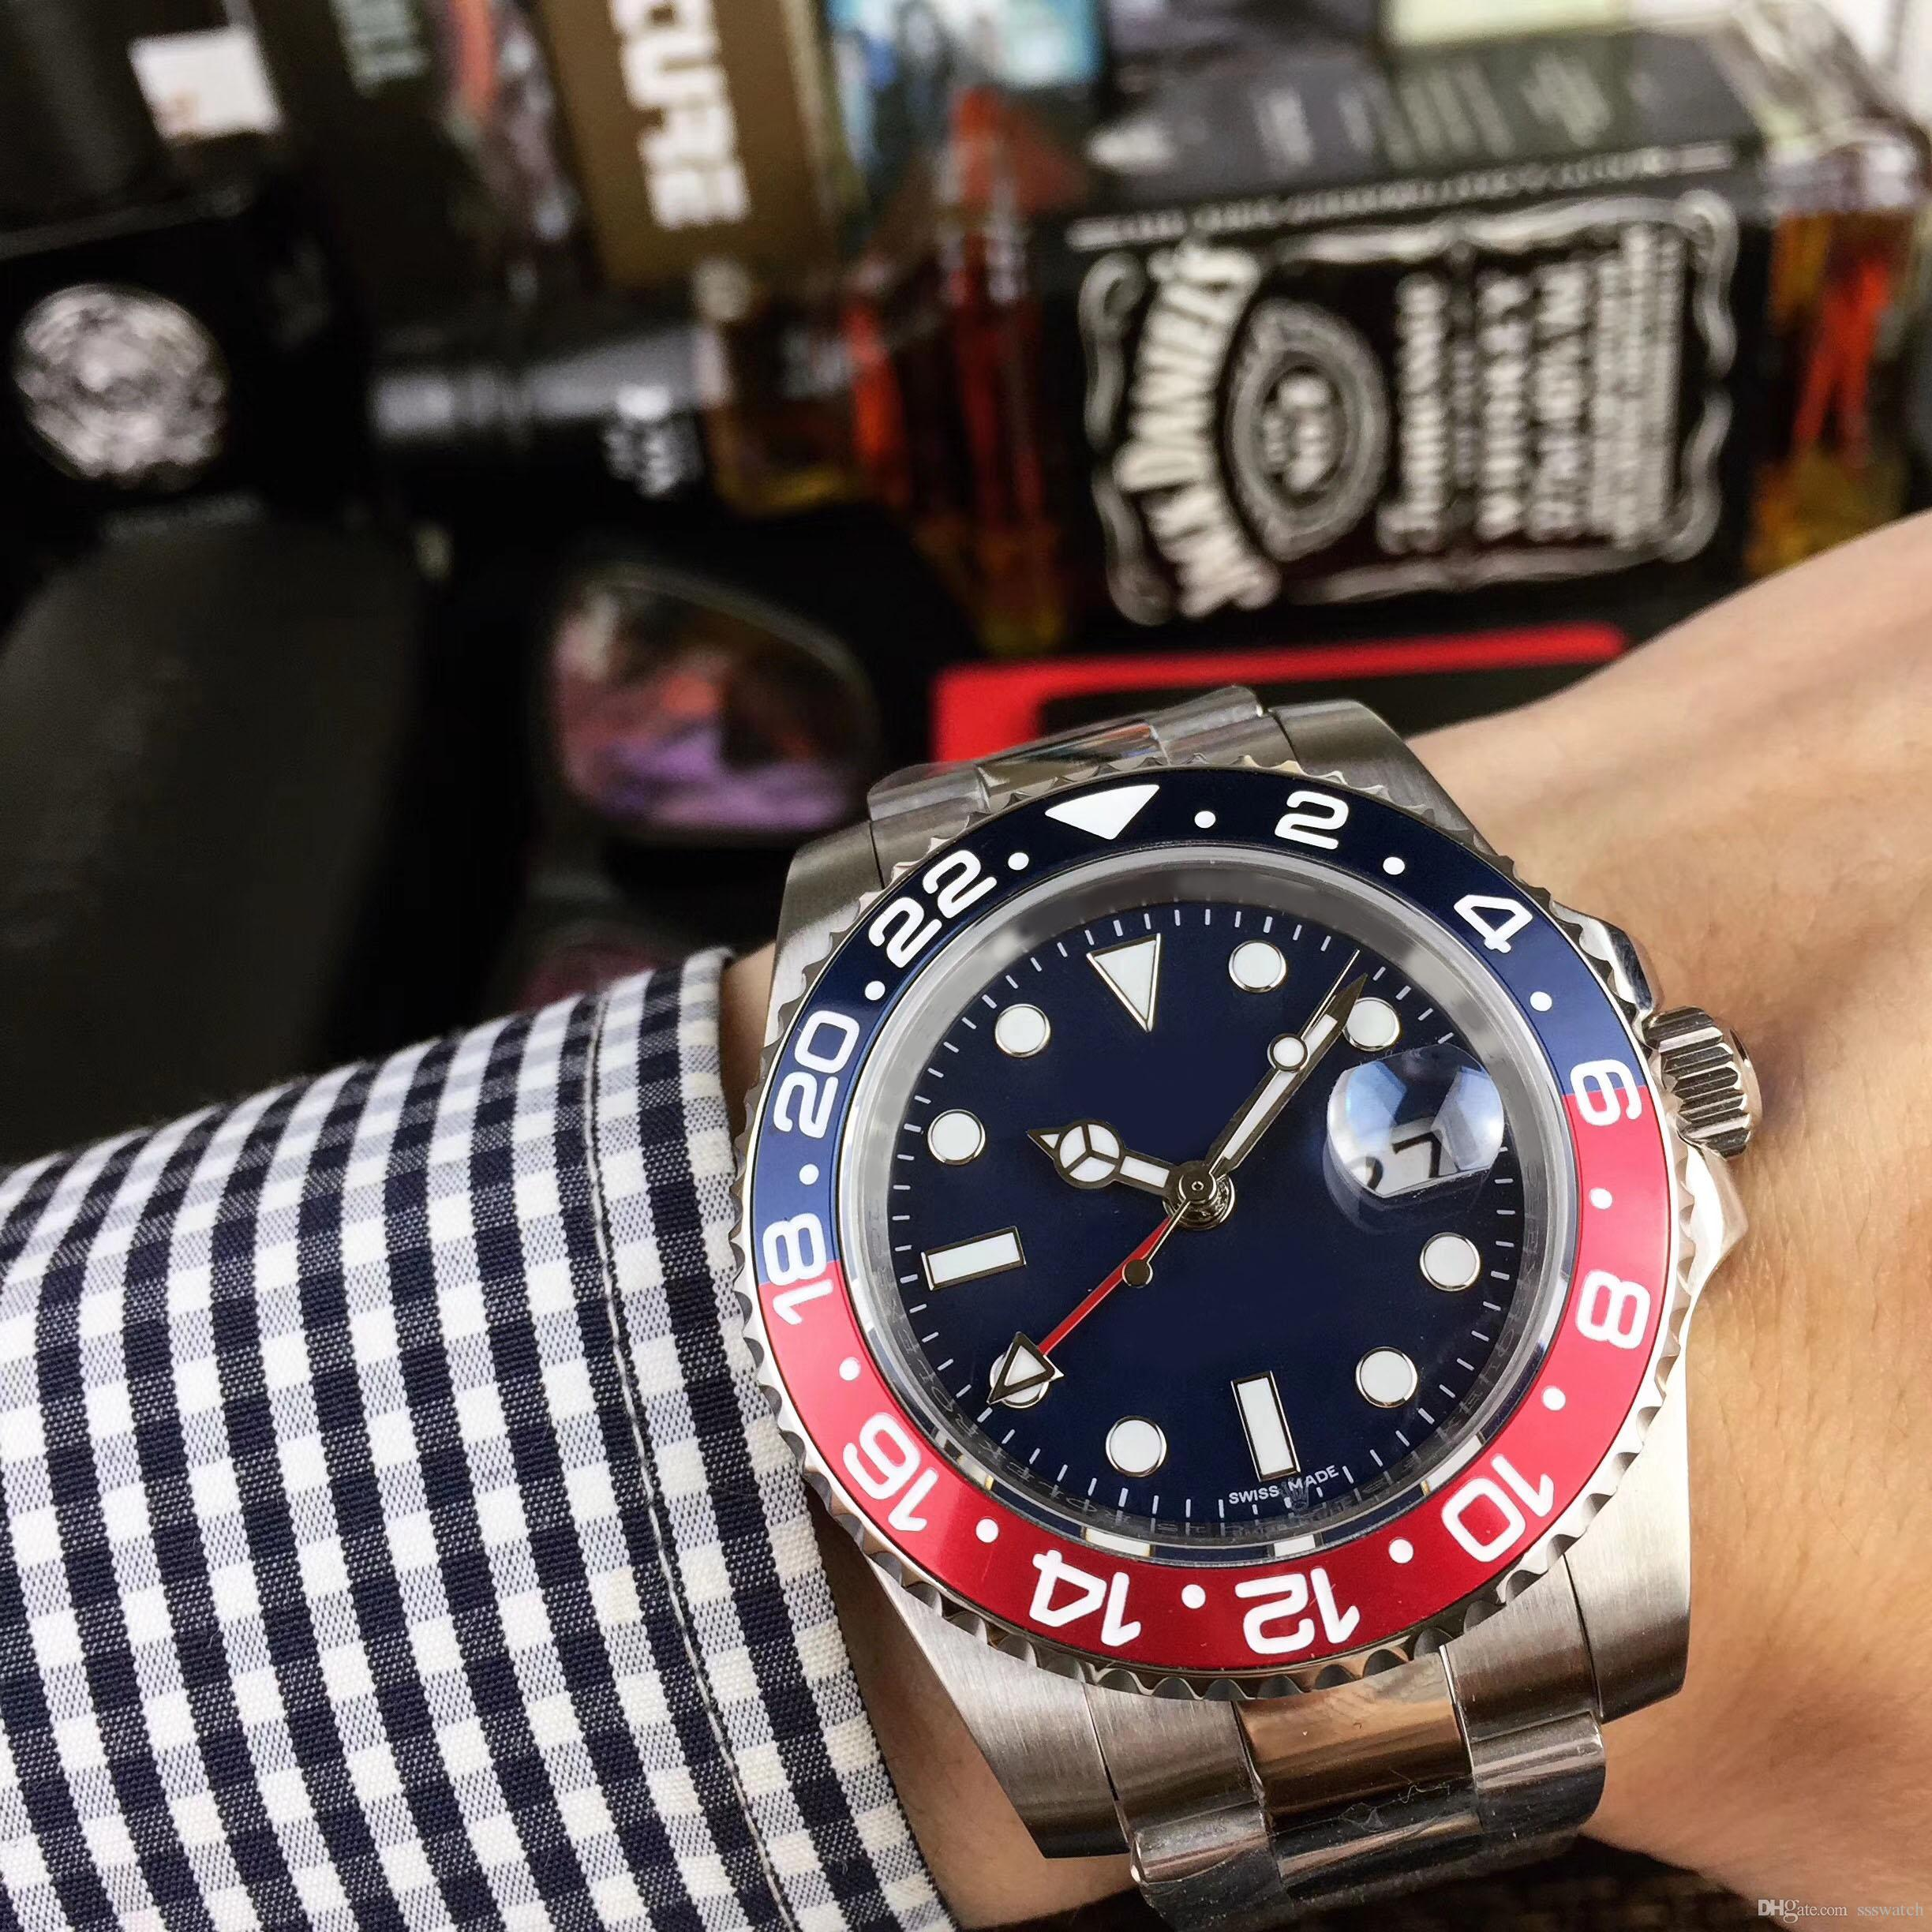 priced grand and a hi to announces new blog is multiple limited baselworld watches seiko pieces at the total beat caliber mosaic